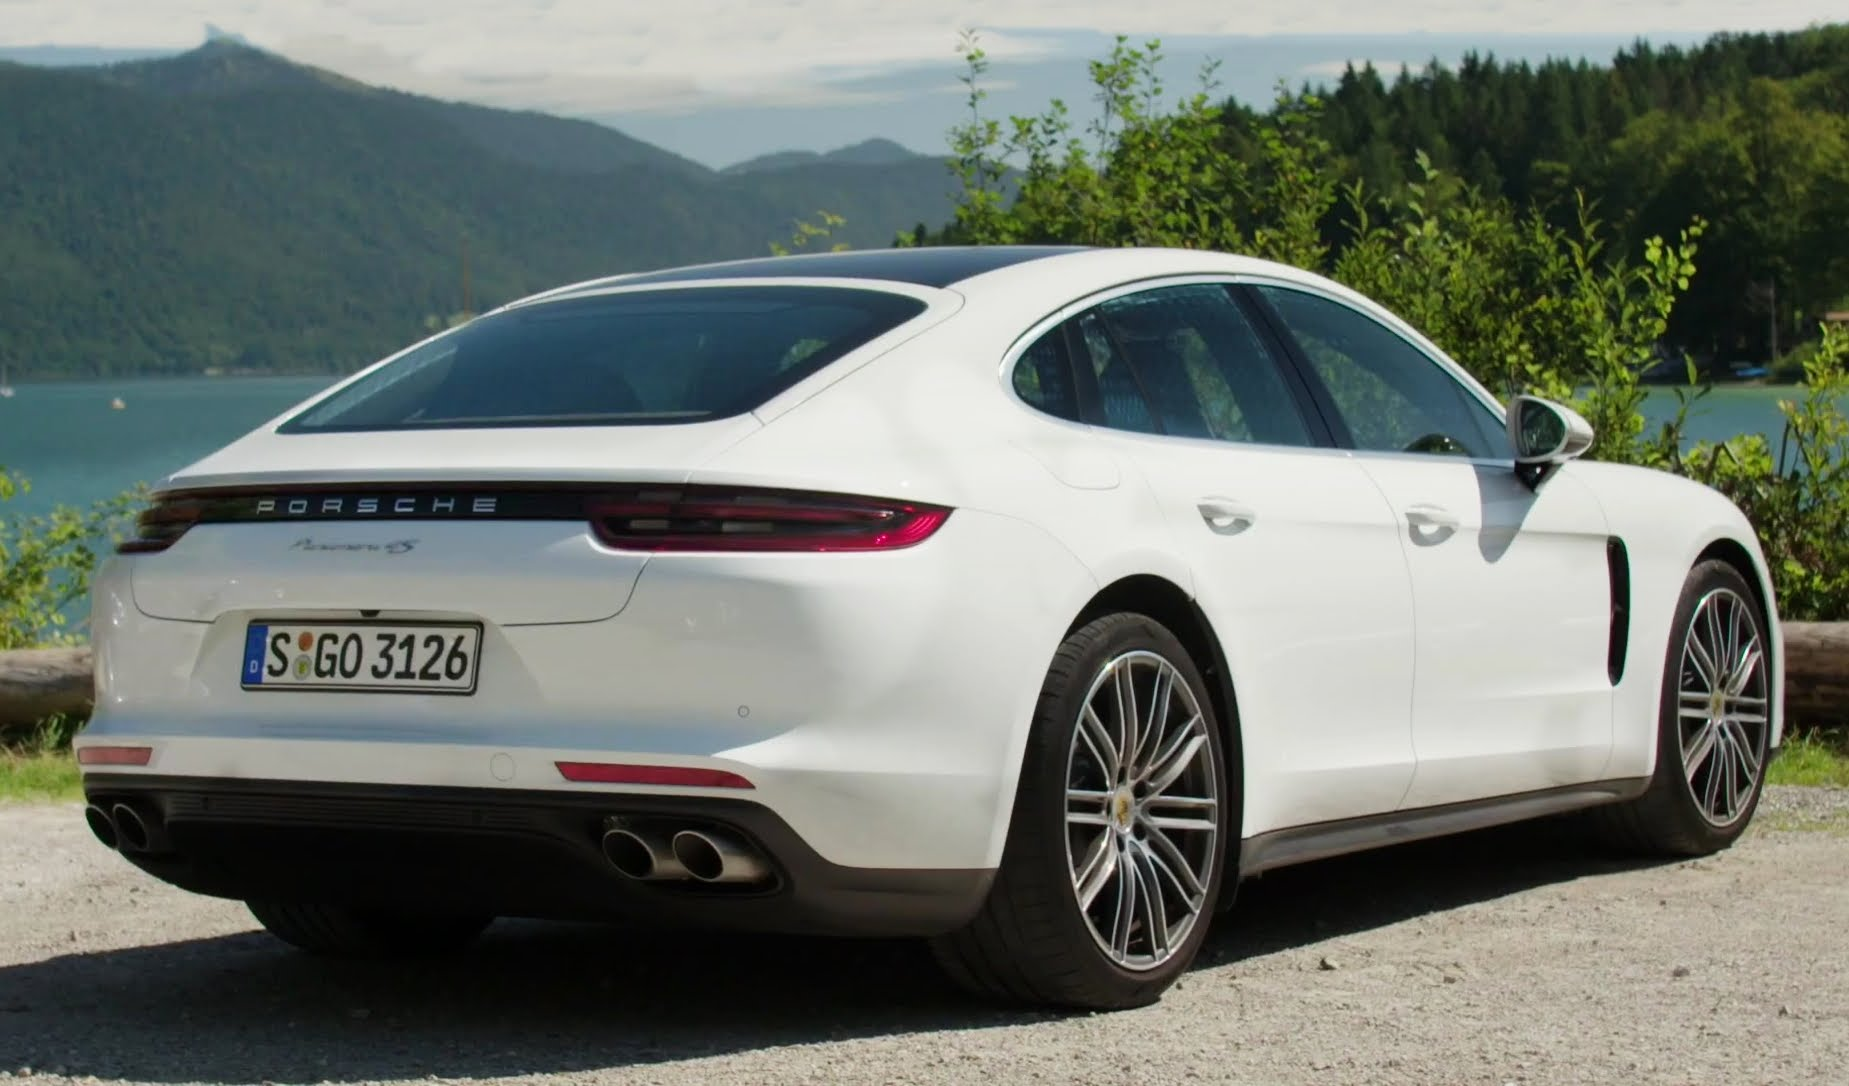 2017 porsche panamera awesome coupe coinpressions review. Black Bedroom Furniture Sets. Home Design Ideas